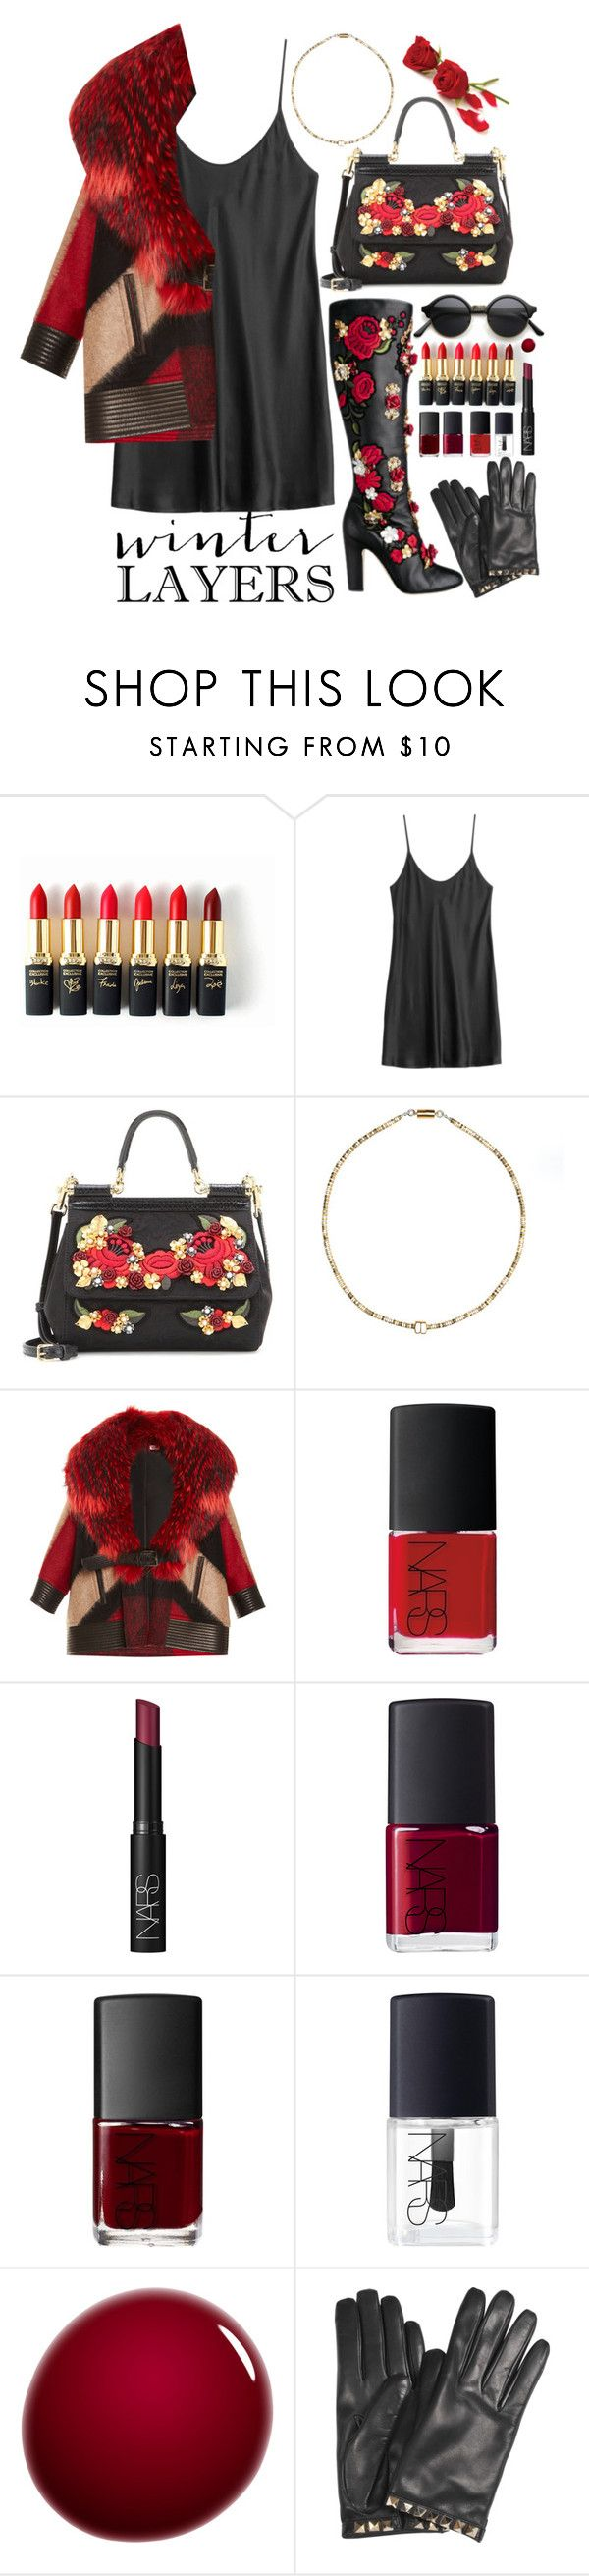 """In Repair ★★ John Mayer"" by devil-in-a-new-dress ❤ liked on Polyvore featuring L'Oréal Paris, La Perla, Dolce&Gabbana, Alice Menter, J. Mendel, NARS Cosmetics, Valentino, women's clothing, women's fashion and women"